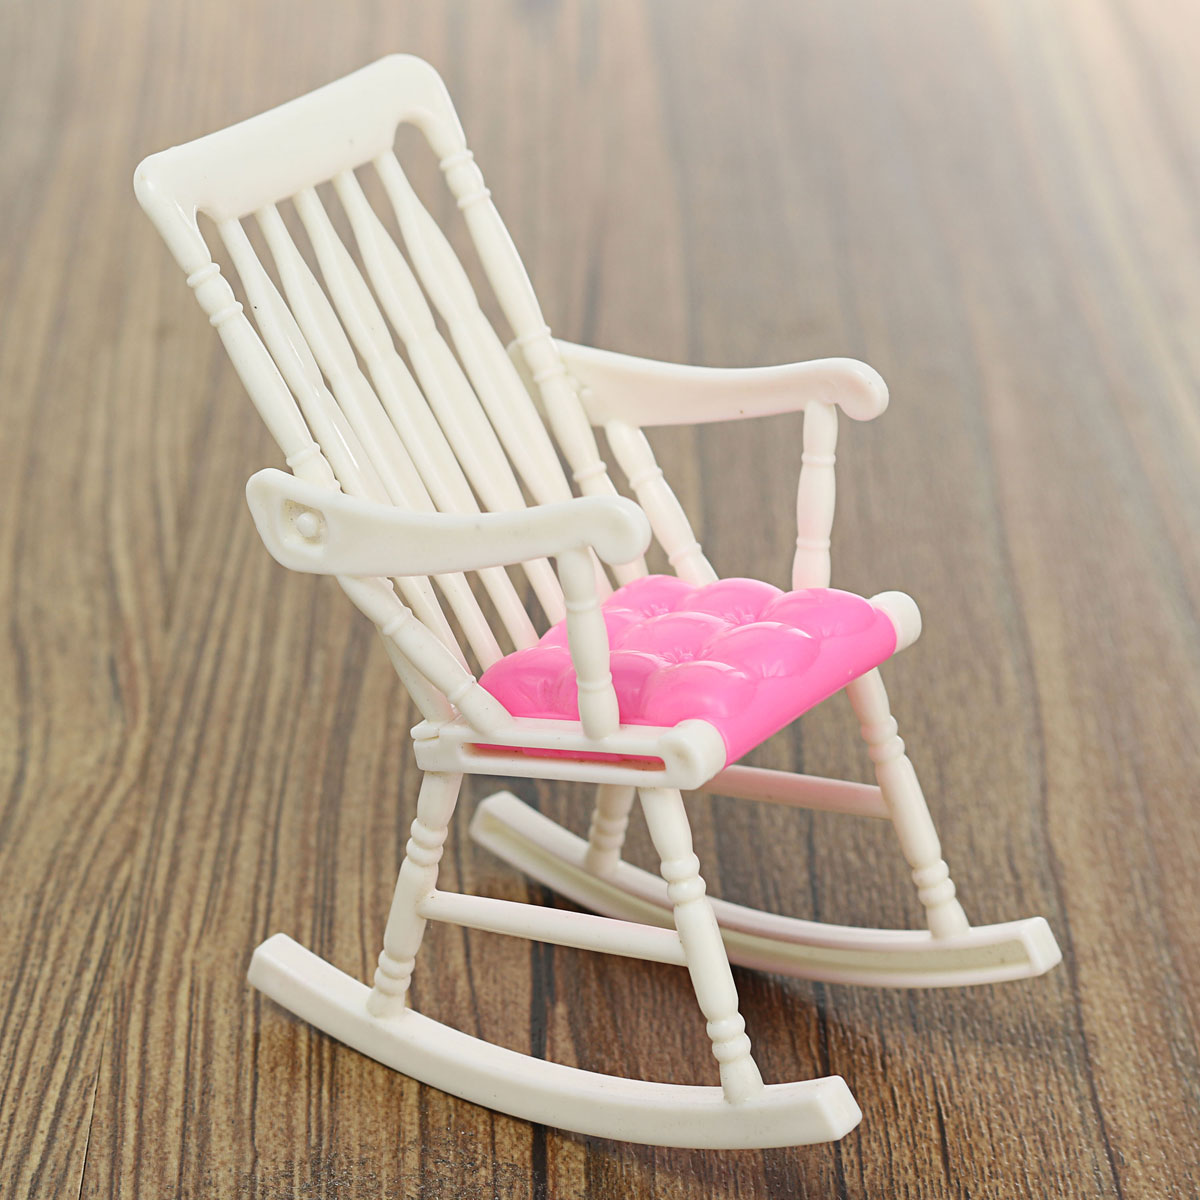 high chair toys r us ergonomic lumbar support miniature doll rocking accessories ⓪ for